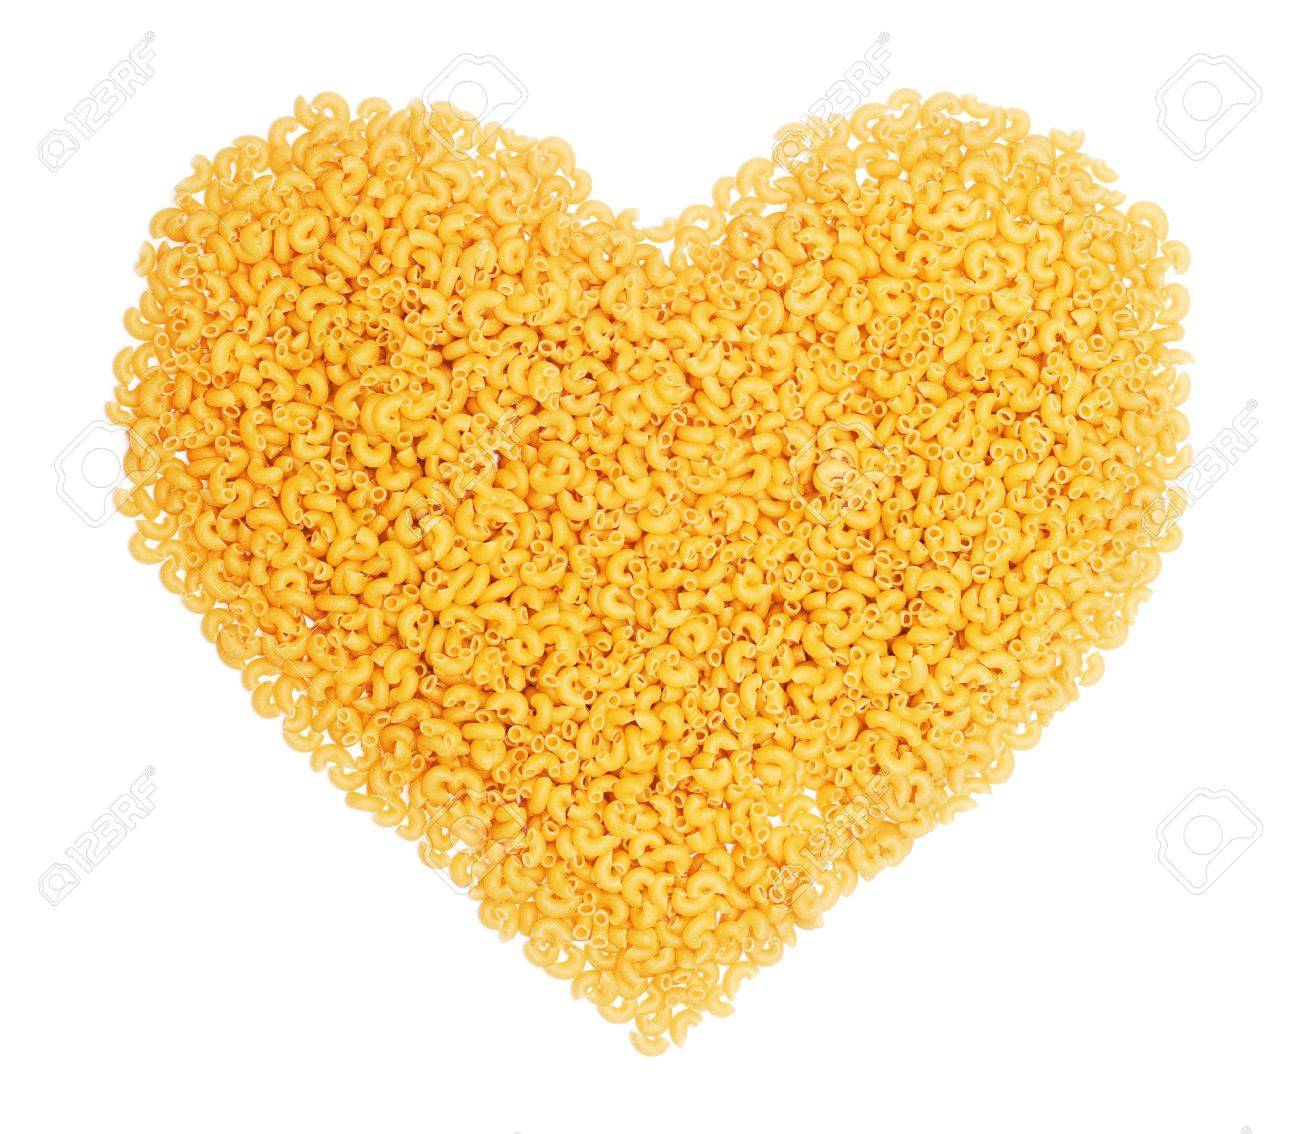 heart shape from pasta on the white background - 8817365